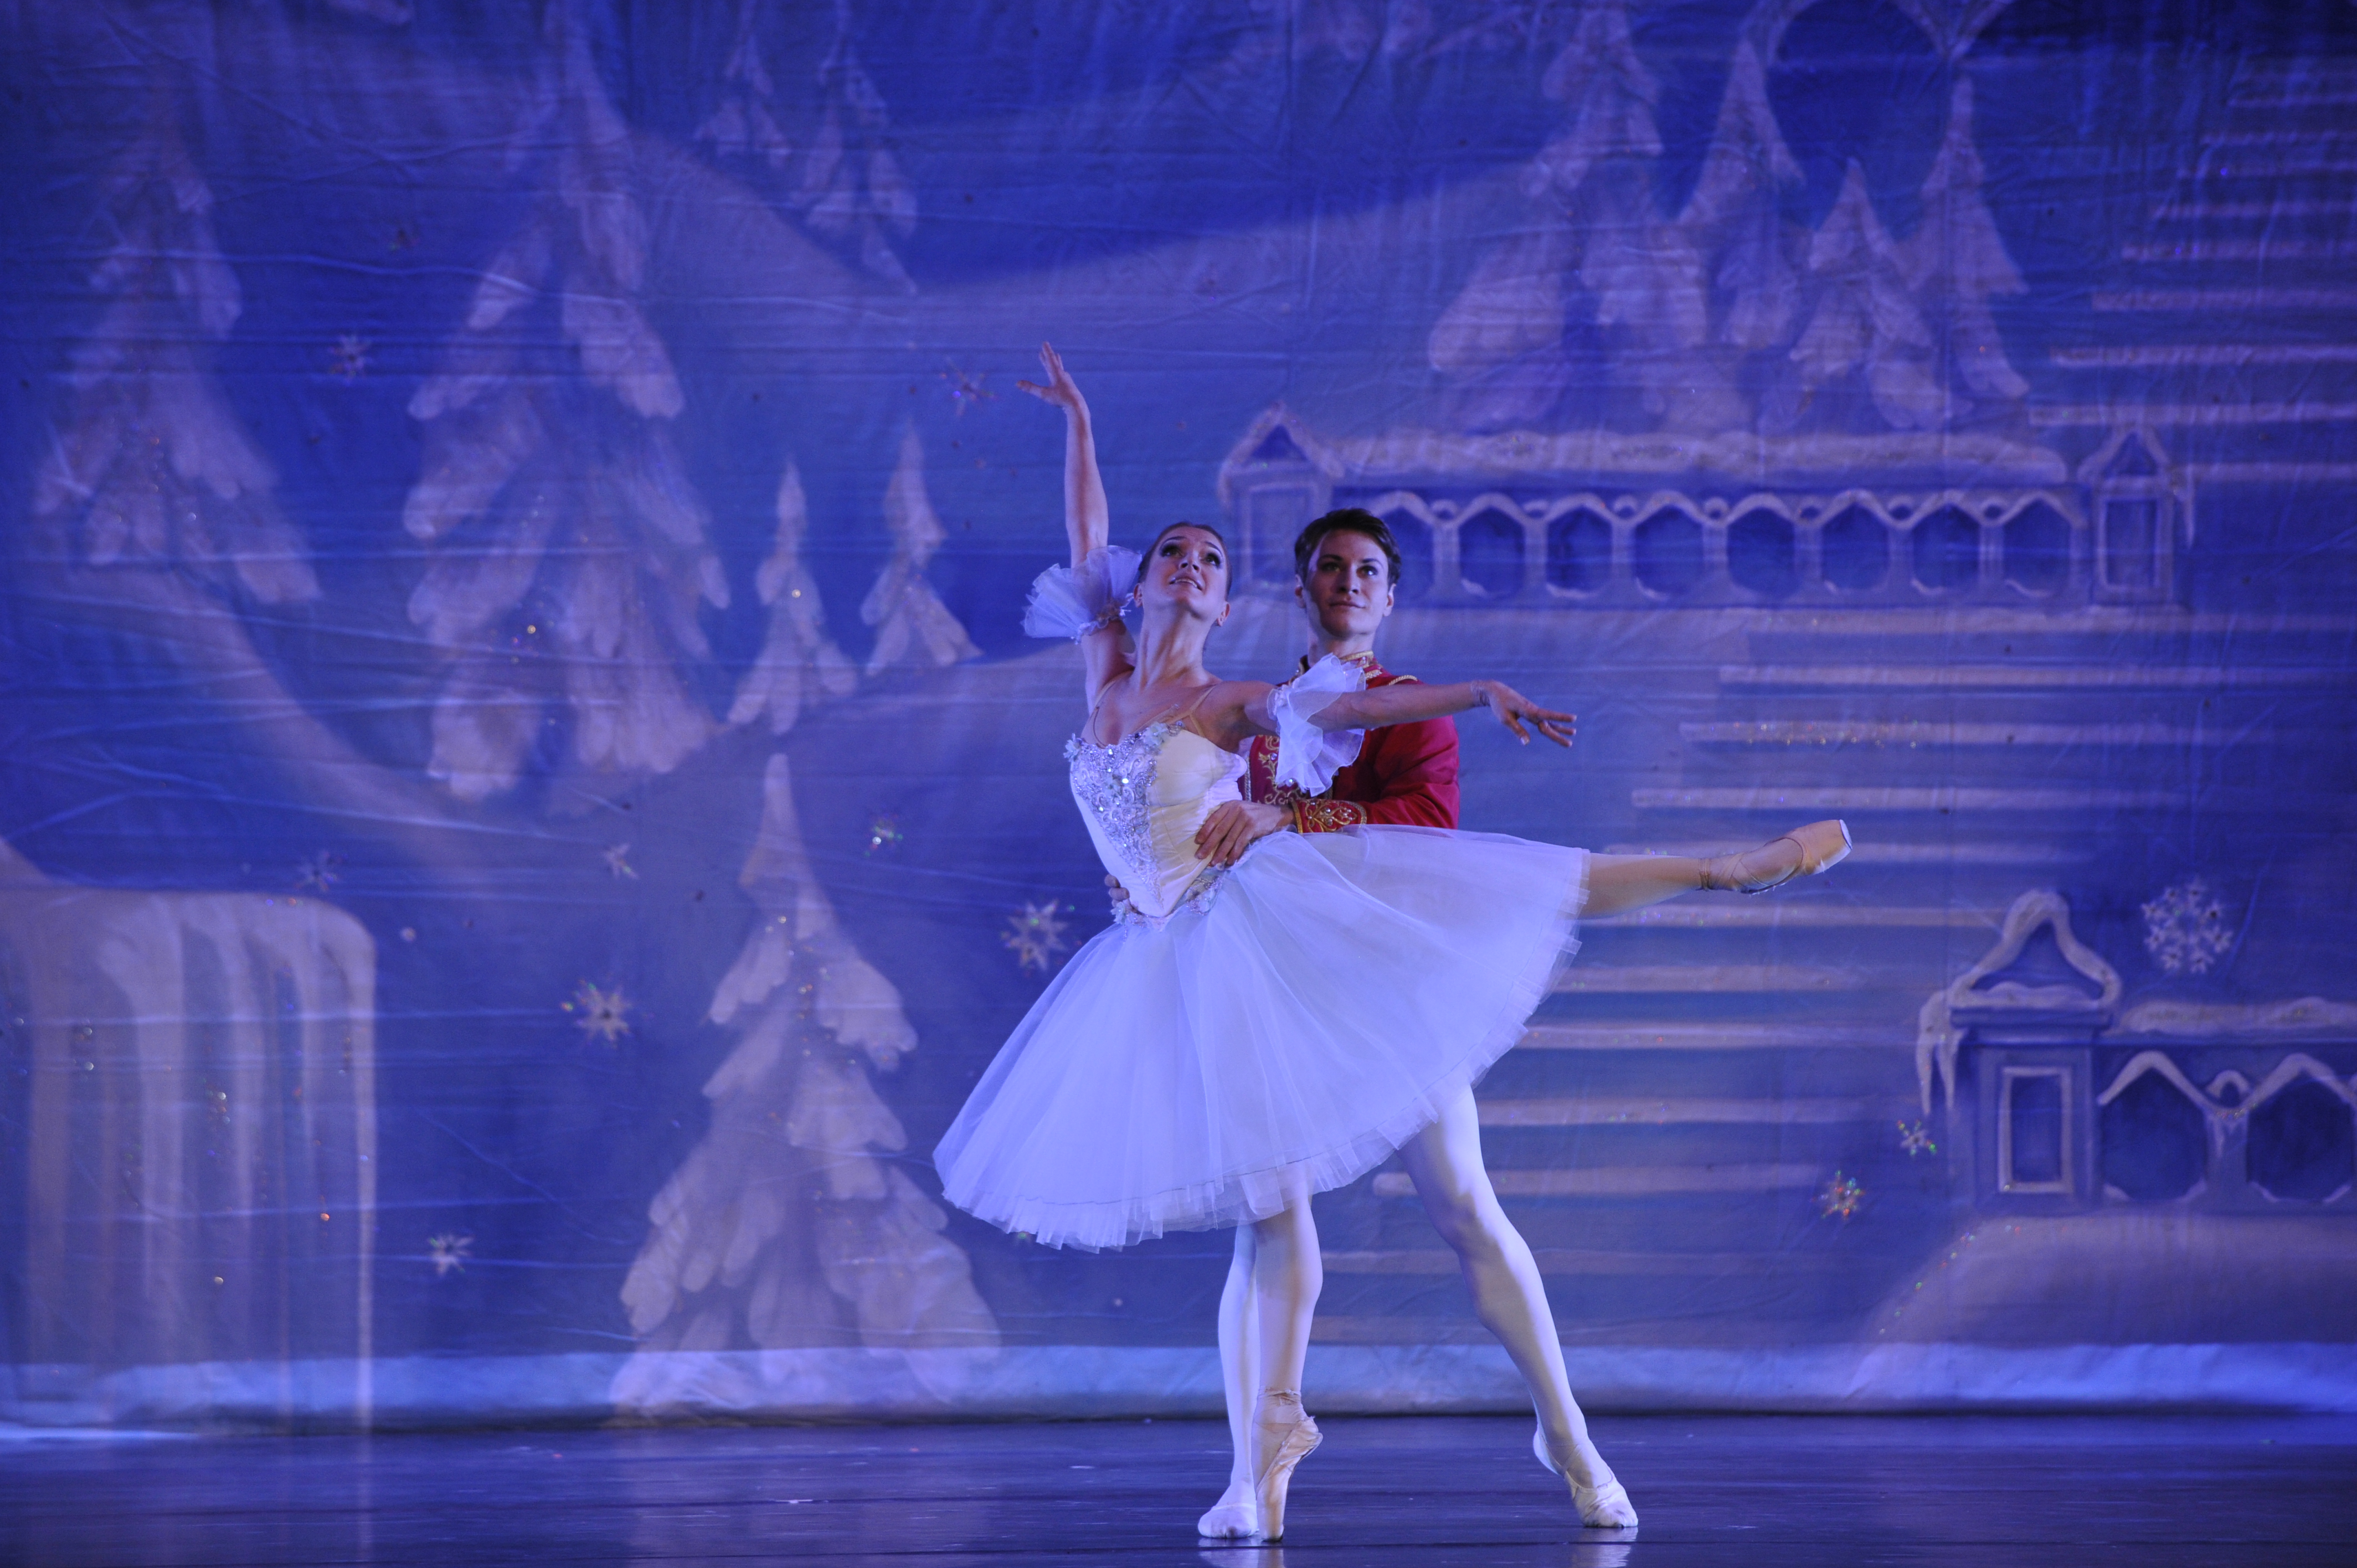 Moscow Ballet's Great Russian Nutcracker - Masha and her Nutcracker Prince